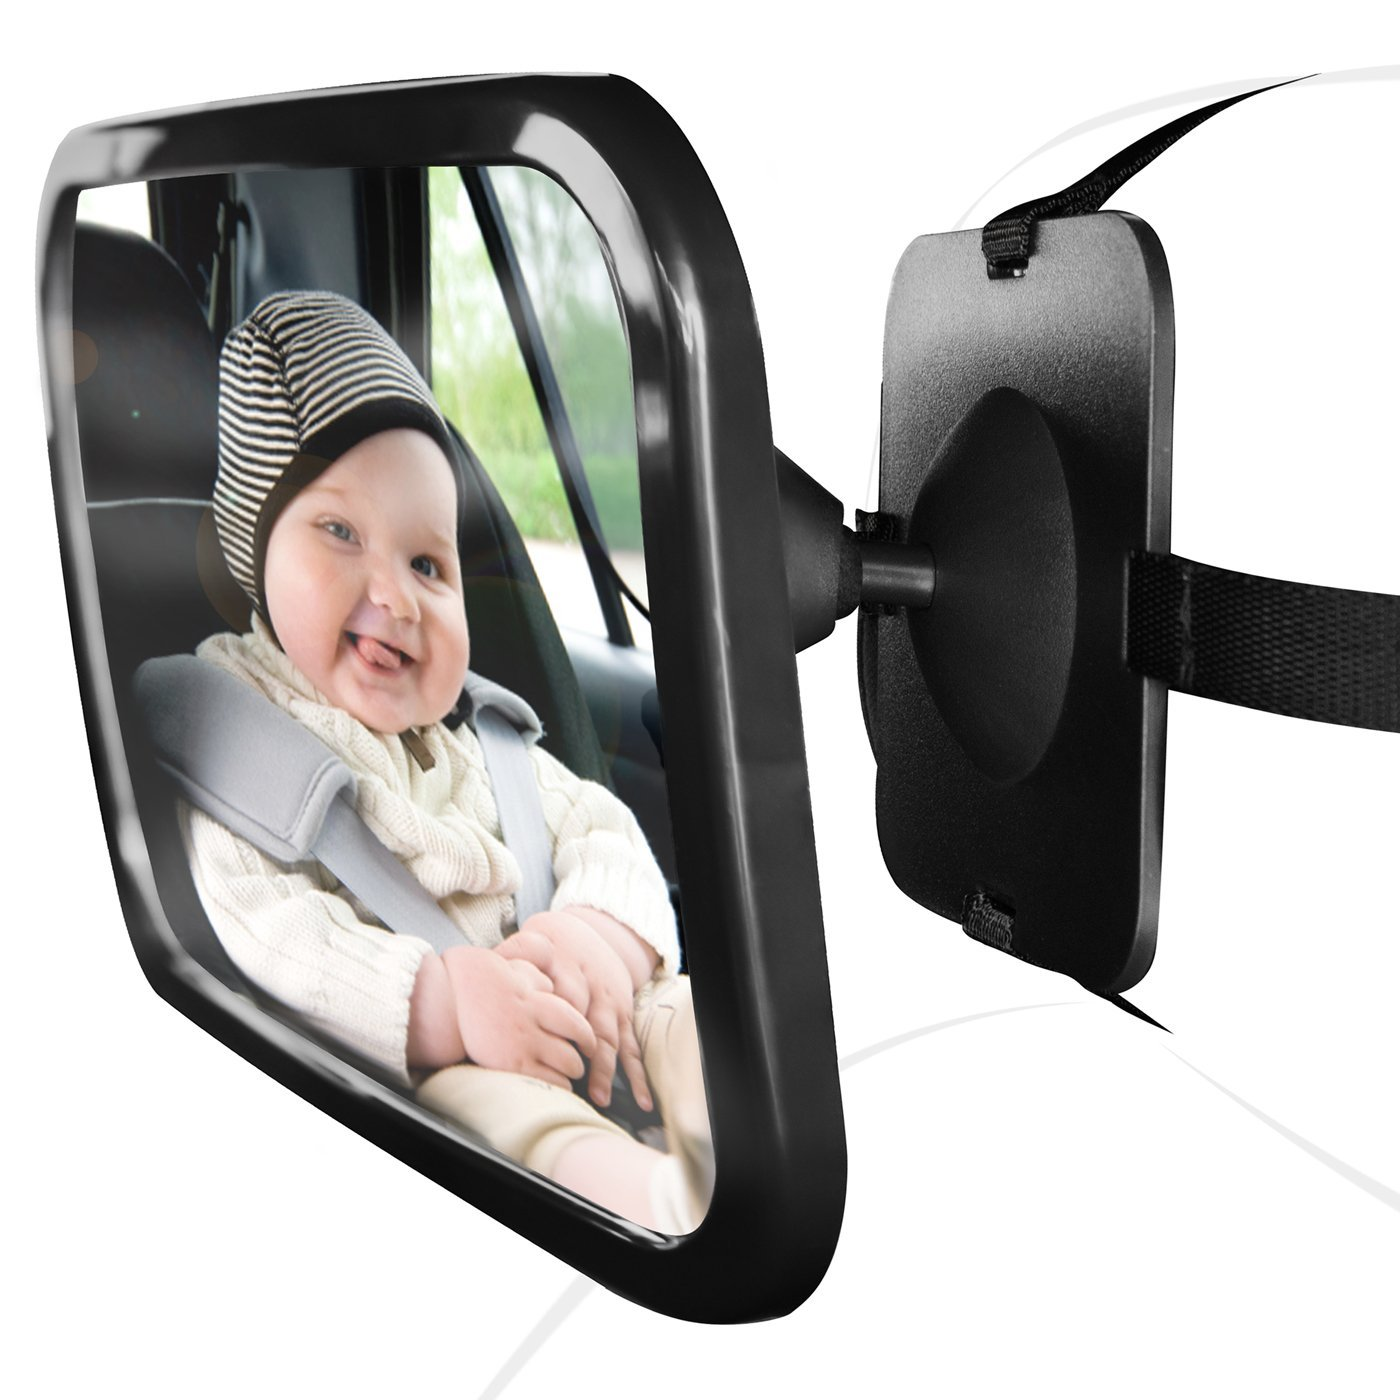 Keoghs 2017 new baby car mirror for rear view facing back seat for infant toddler